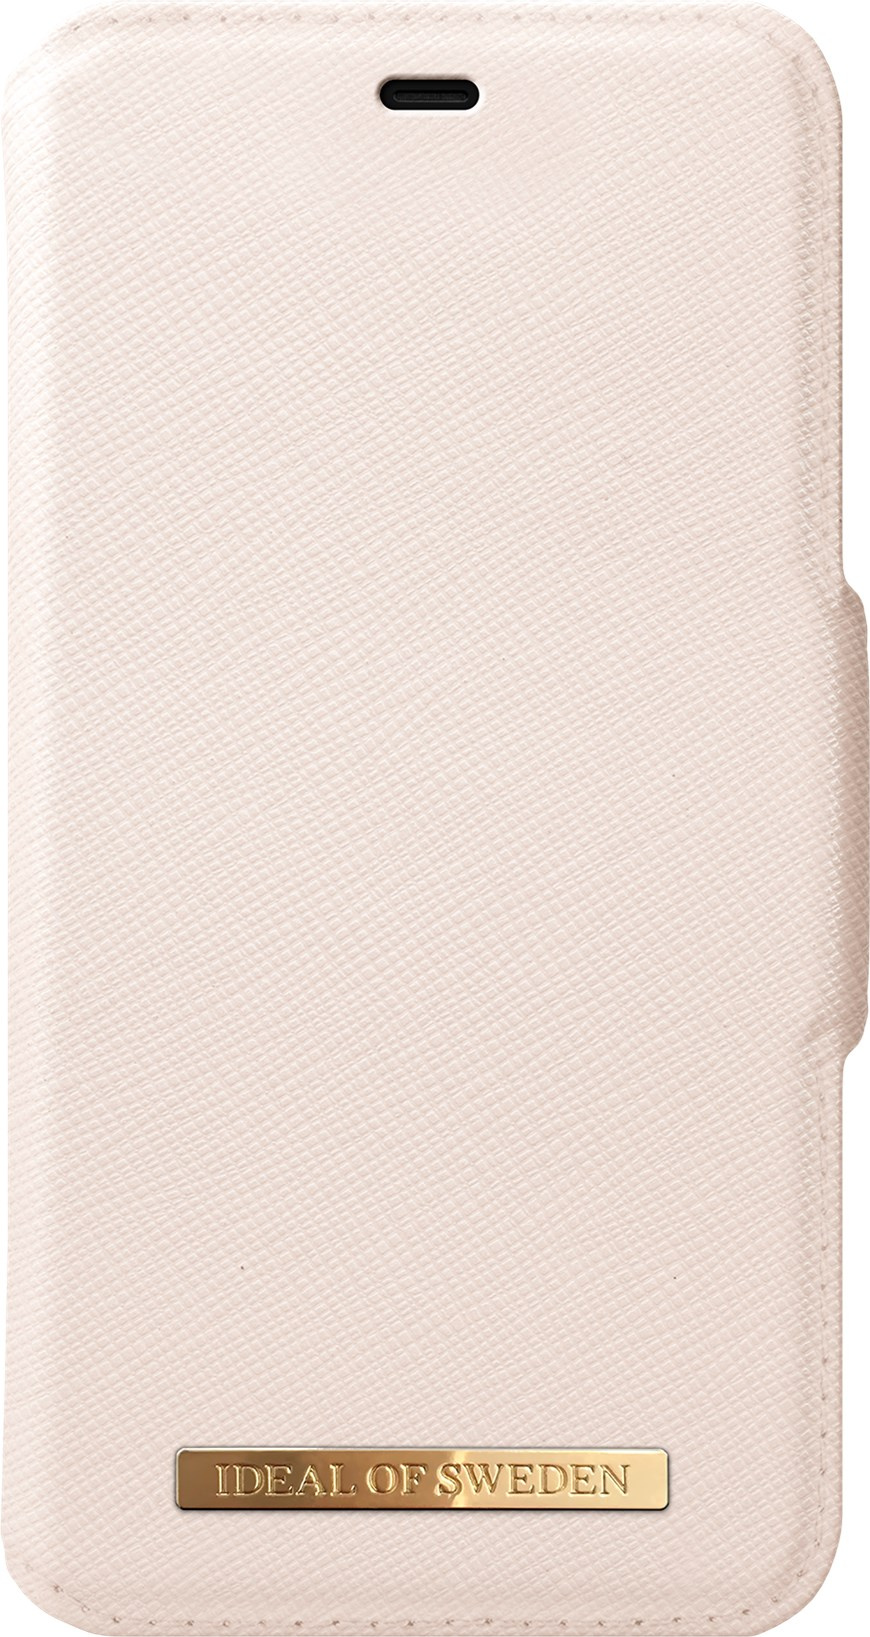 iDeal of Sweden Ideal Fashion Wallet Iphone 11 Pro Max Beige